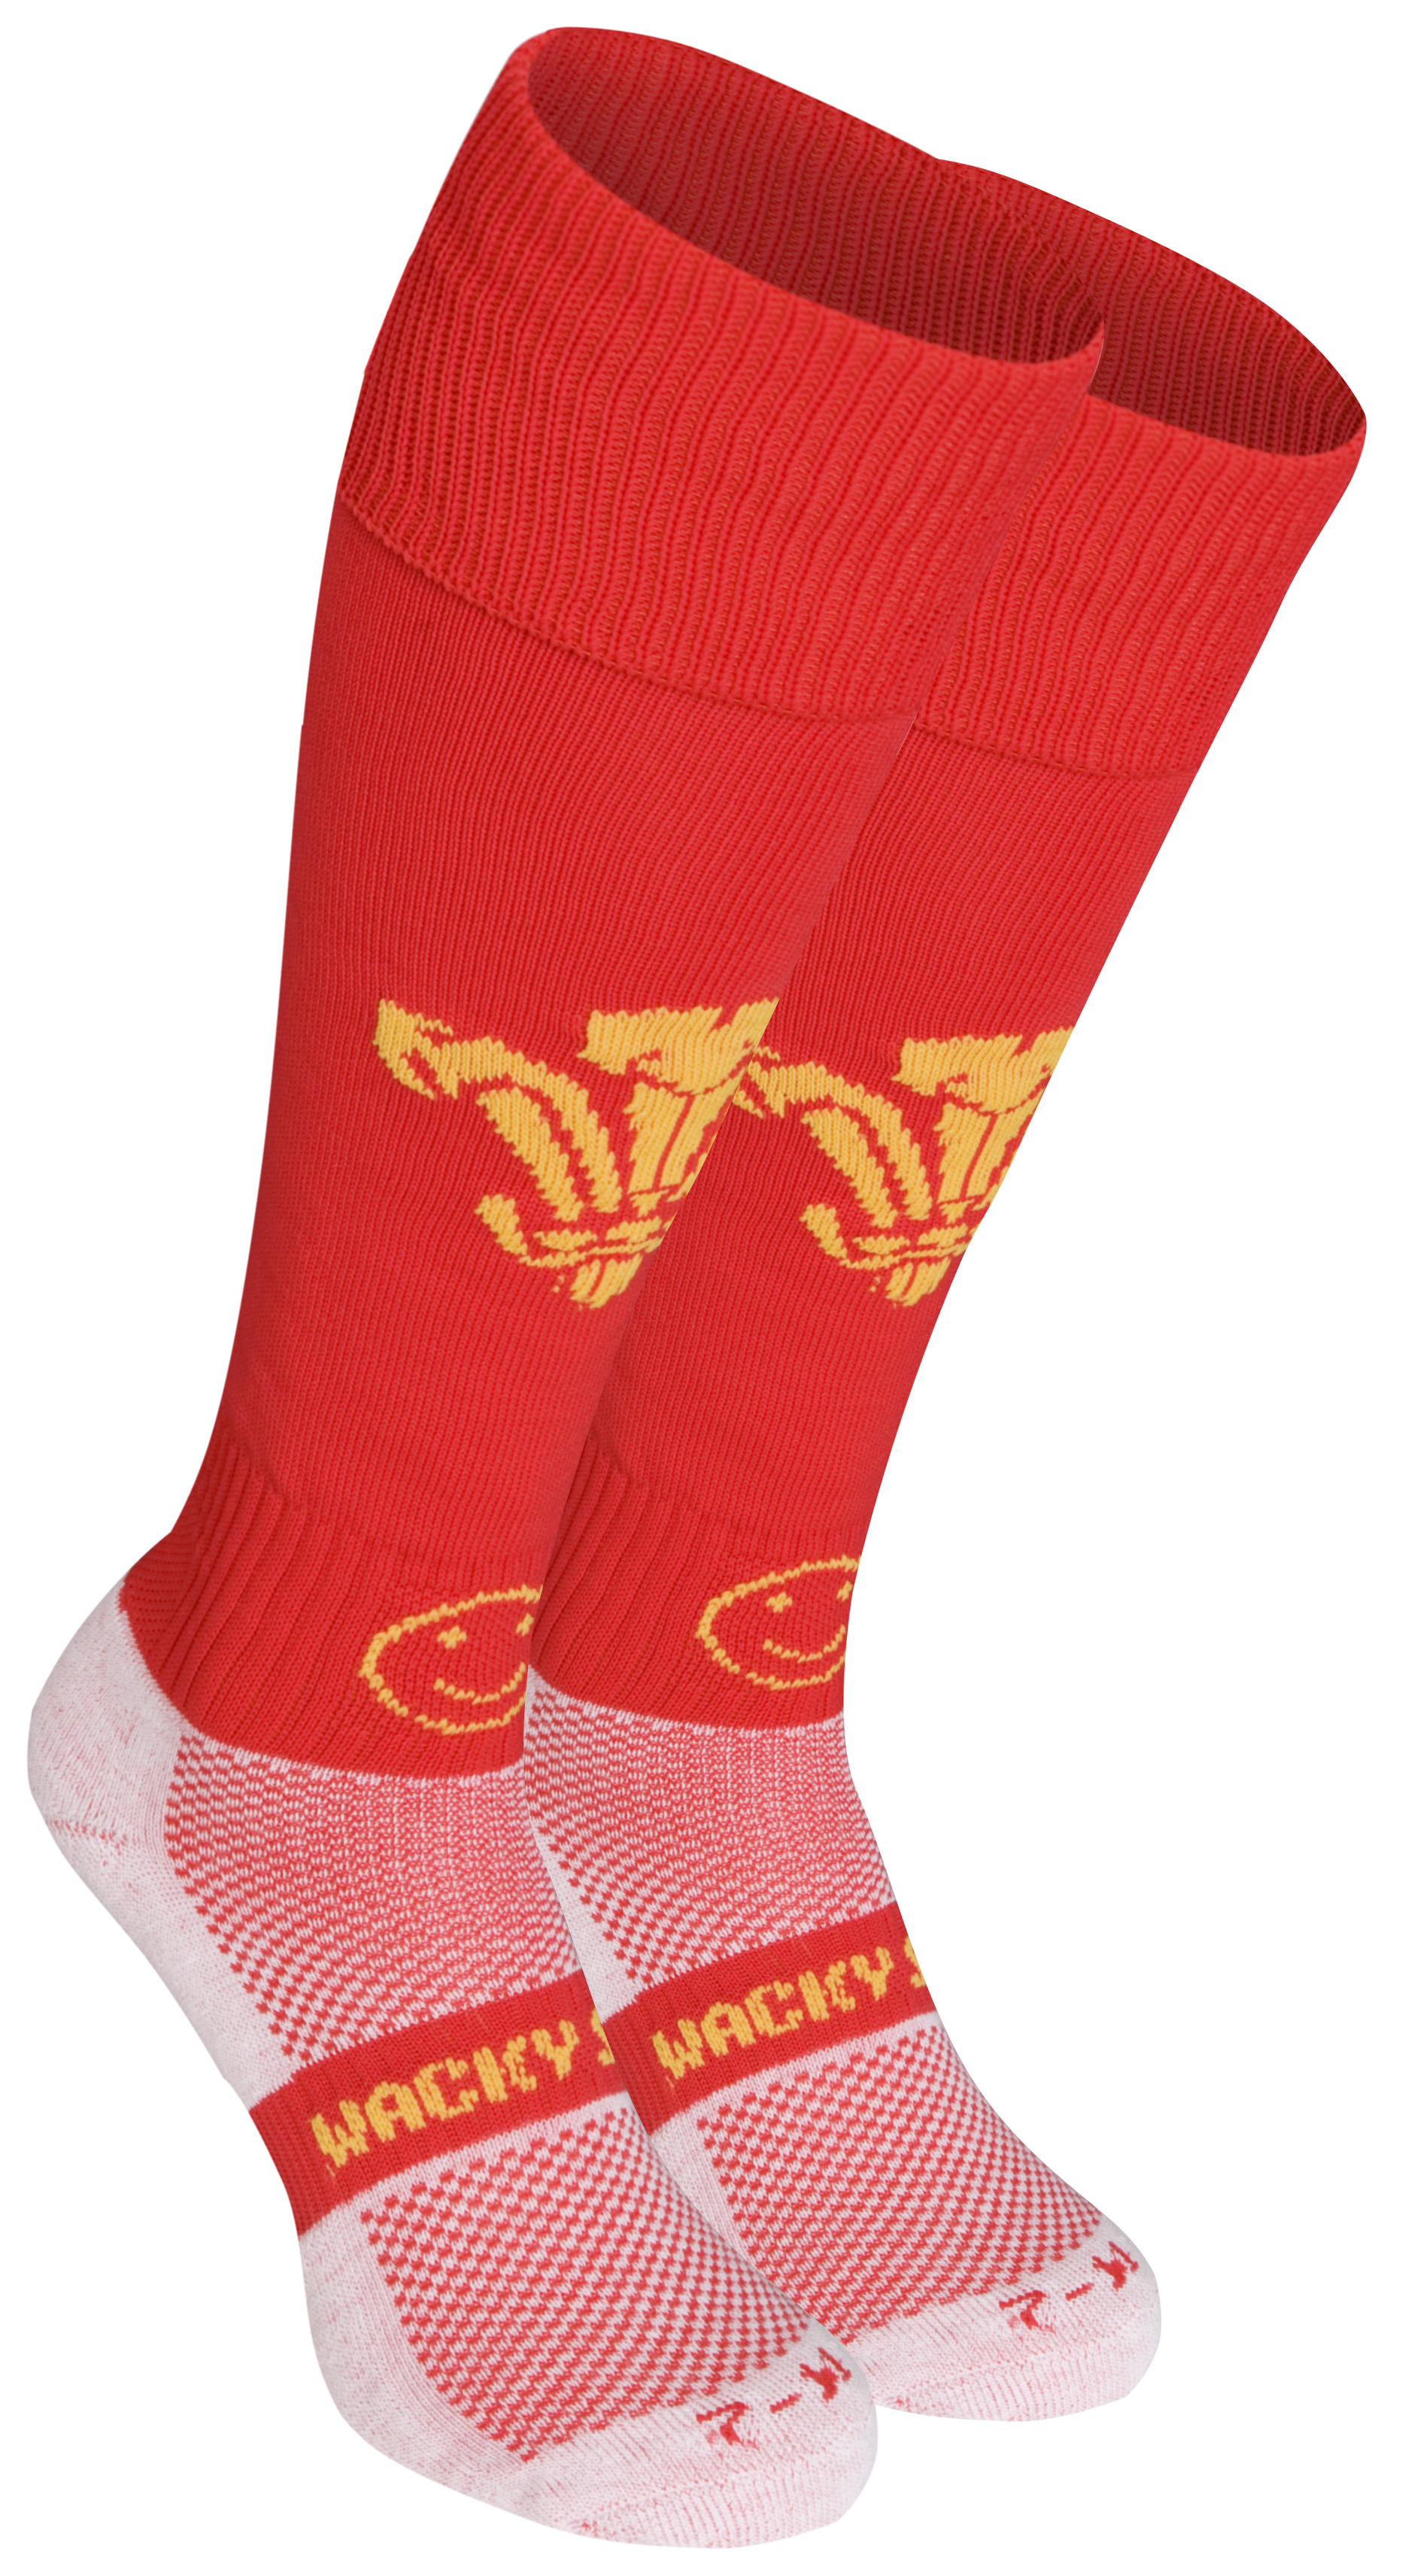 WackySox Wales Socks - Red - Size 2-6